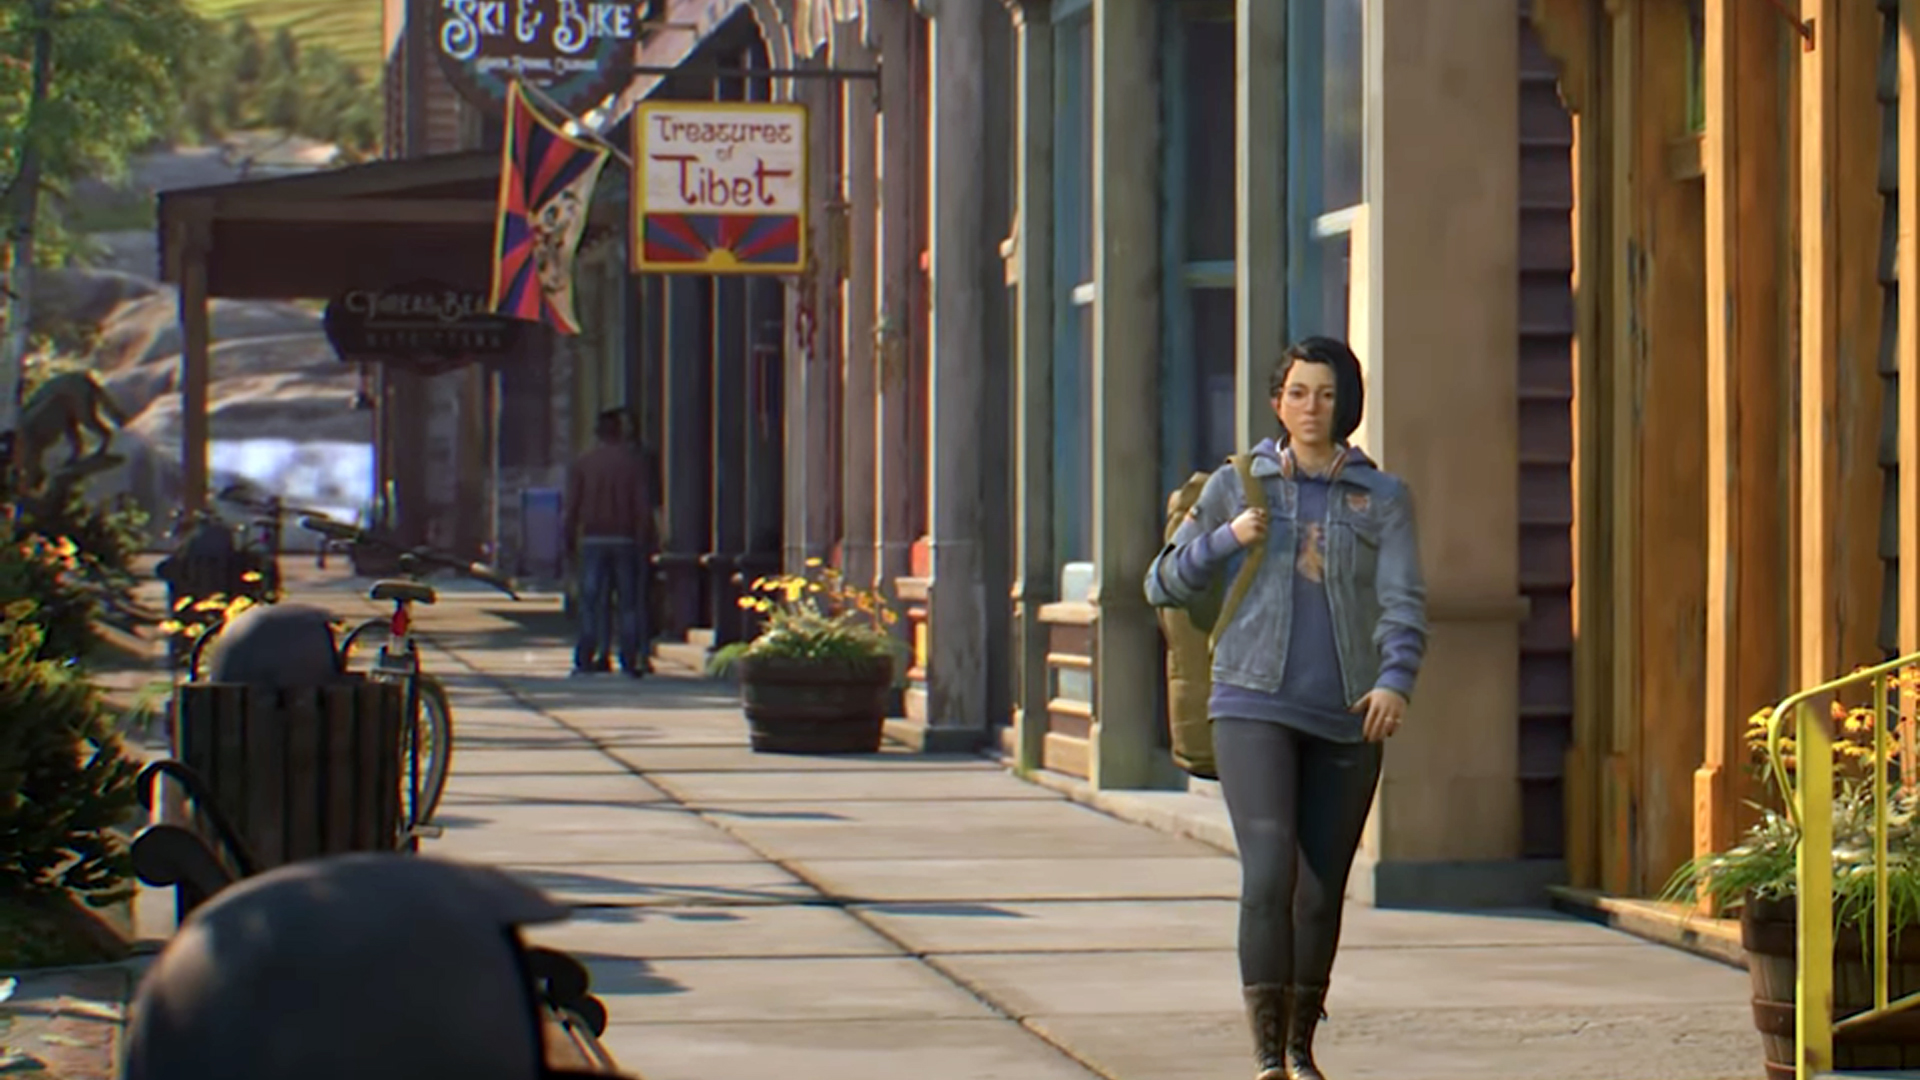 Life is Strange: True Colors is getting review-bombed thanks to a flag